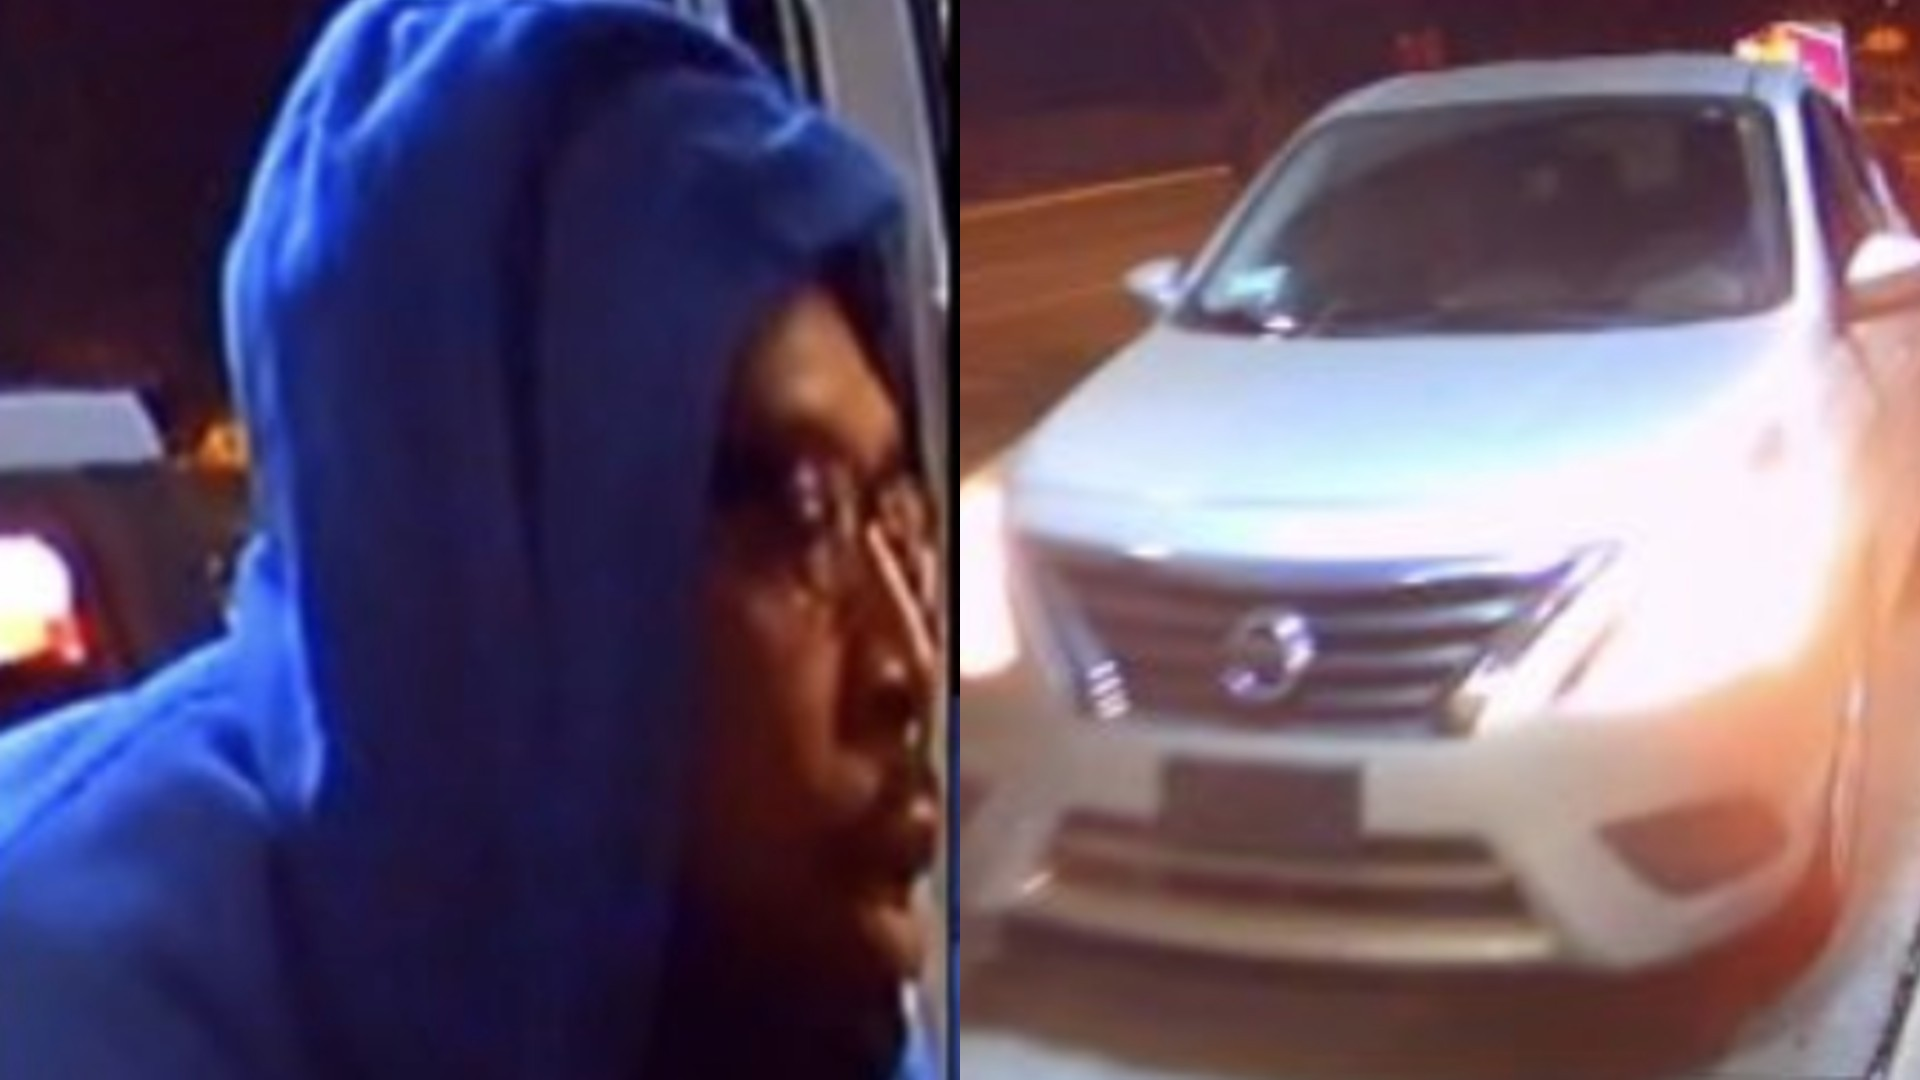 An armed robbery suspect and suspect's vehicle are seen in these images provided by the Los Angeles County Sheriff's Department.